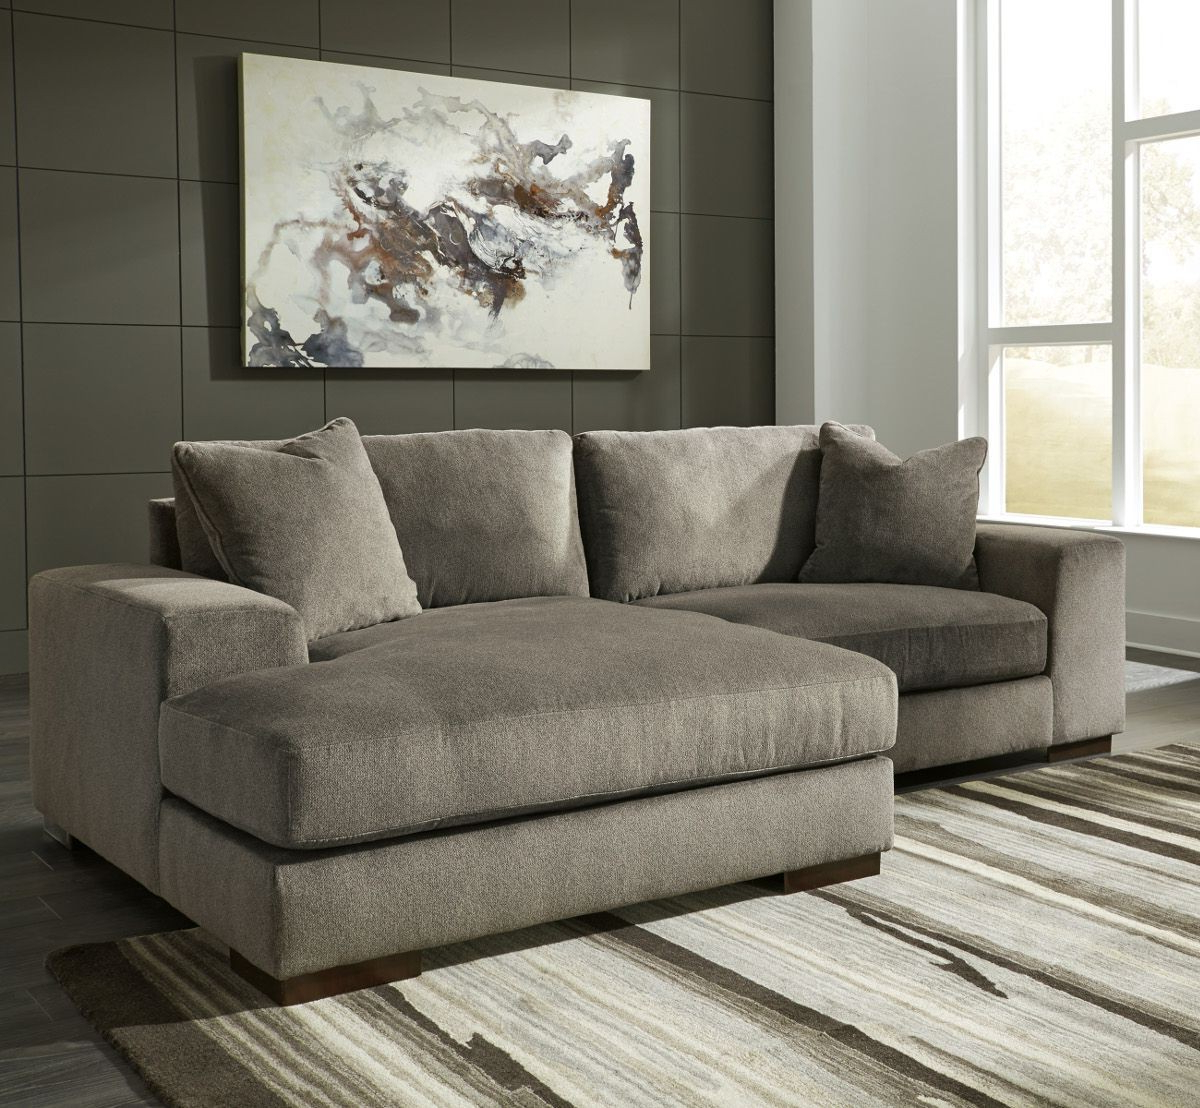 Most Popular Ashley Furniture Manzani 2 Piece Sectional With Raf Chaise In Throughout Aspen 2 Piece Sectionals With Laf Chaise (View 15 of 20)